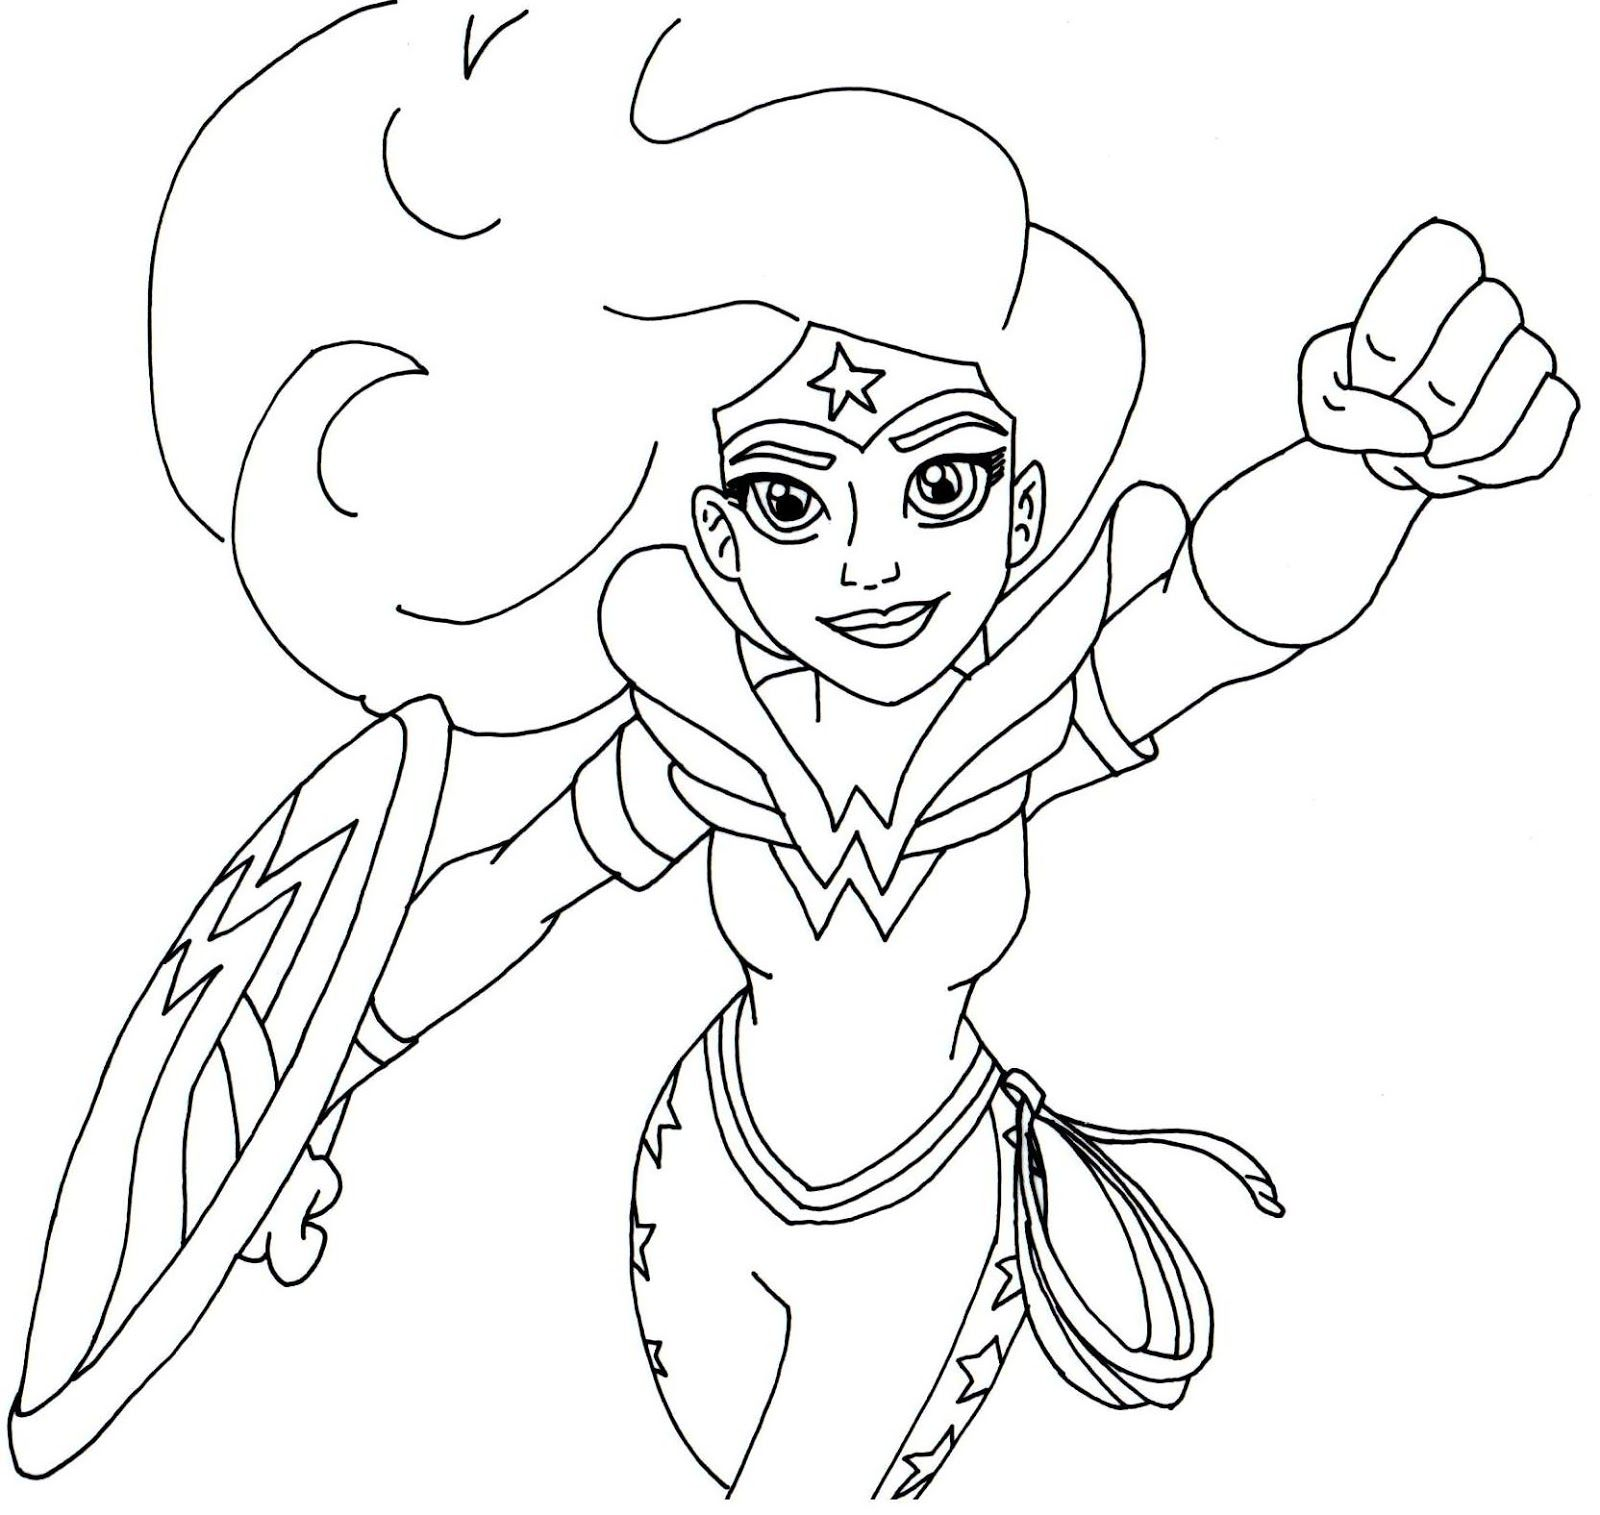 Free Supergirl Coloring Pages Tag: 25 Marvelous Wonder Woman Coloring Sheet.  Awesome Supergirl Coloring Pages. | 1515x1600